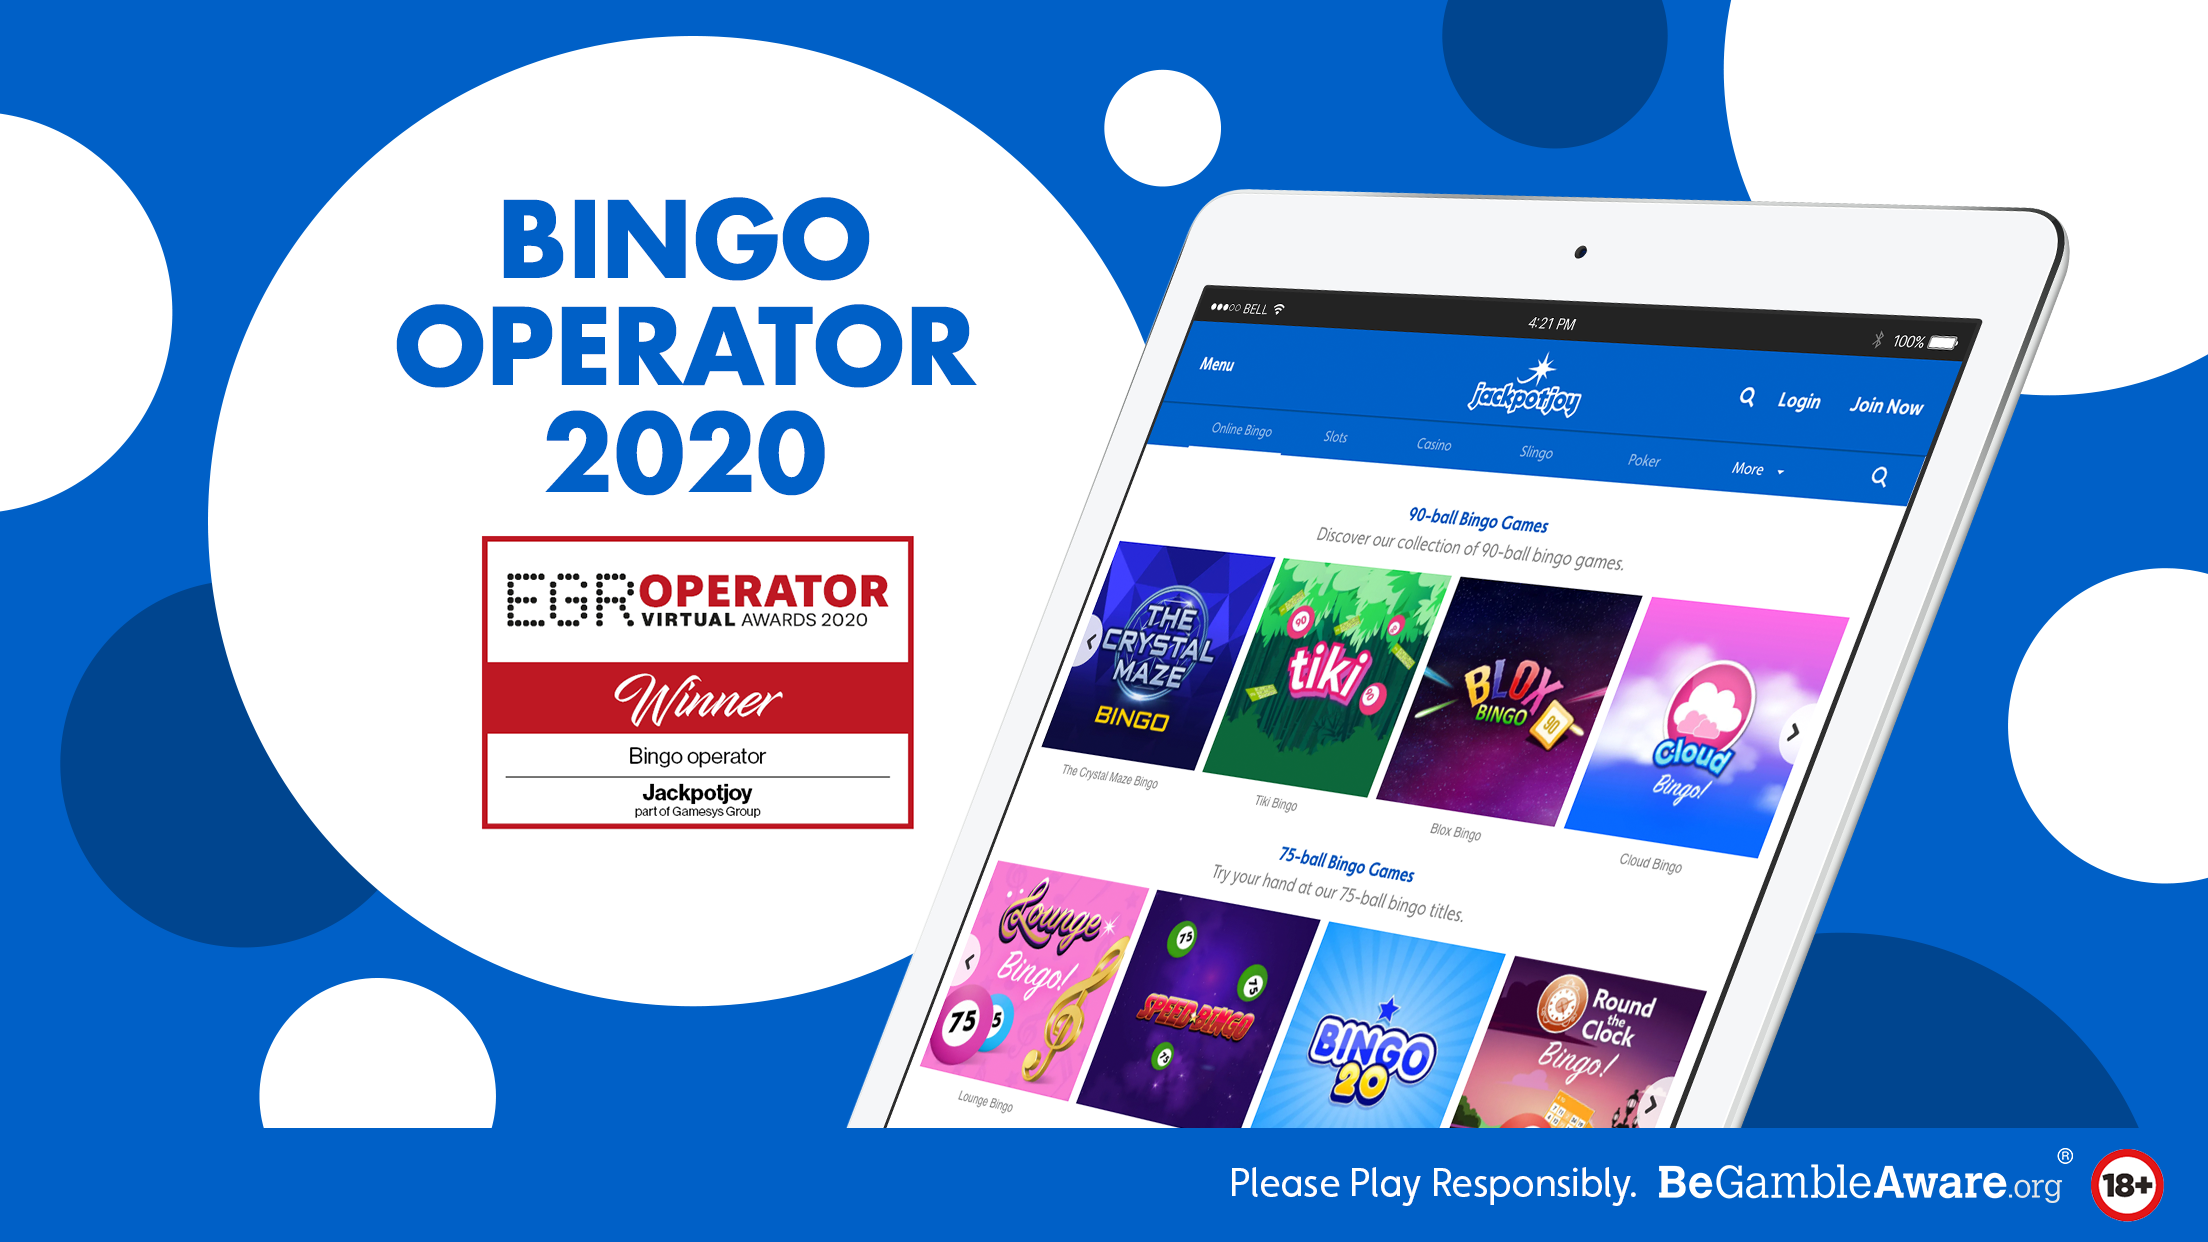 As Bingo Operator of the Year, we have lots of exciting online bingo games for you to enjoy.